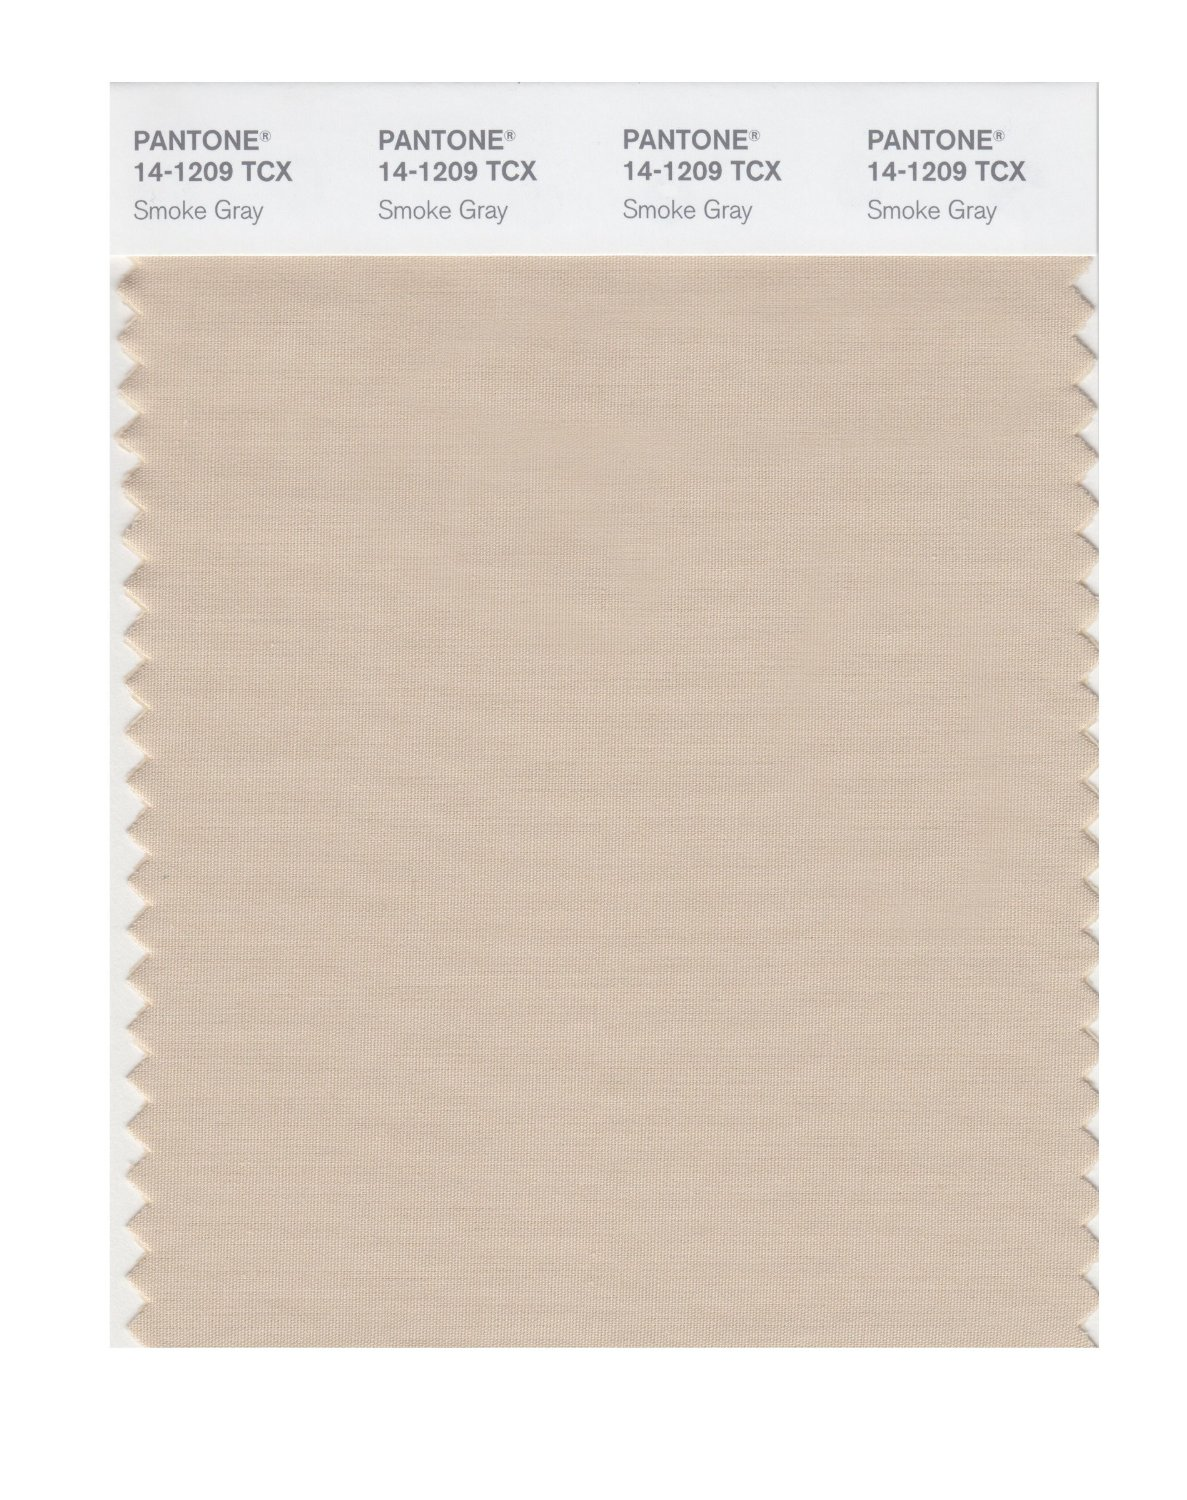 Pantone Smart Swatch 14-1209 Smoke Gray